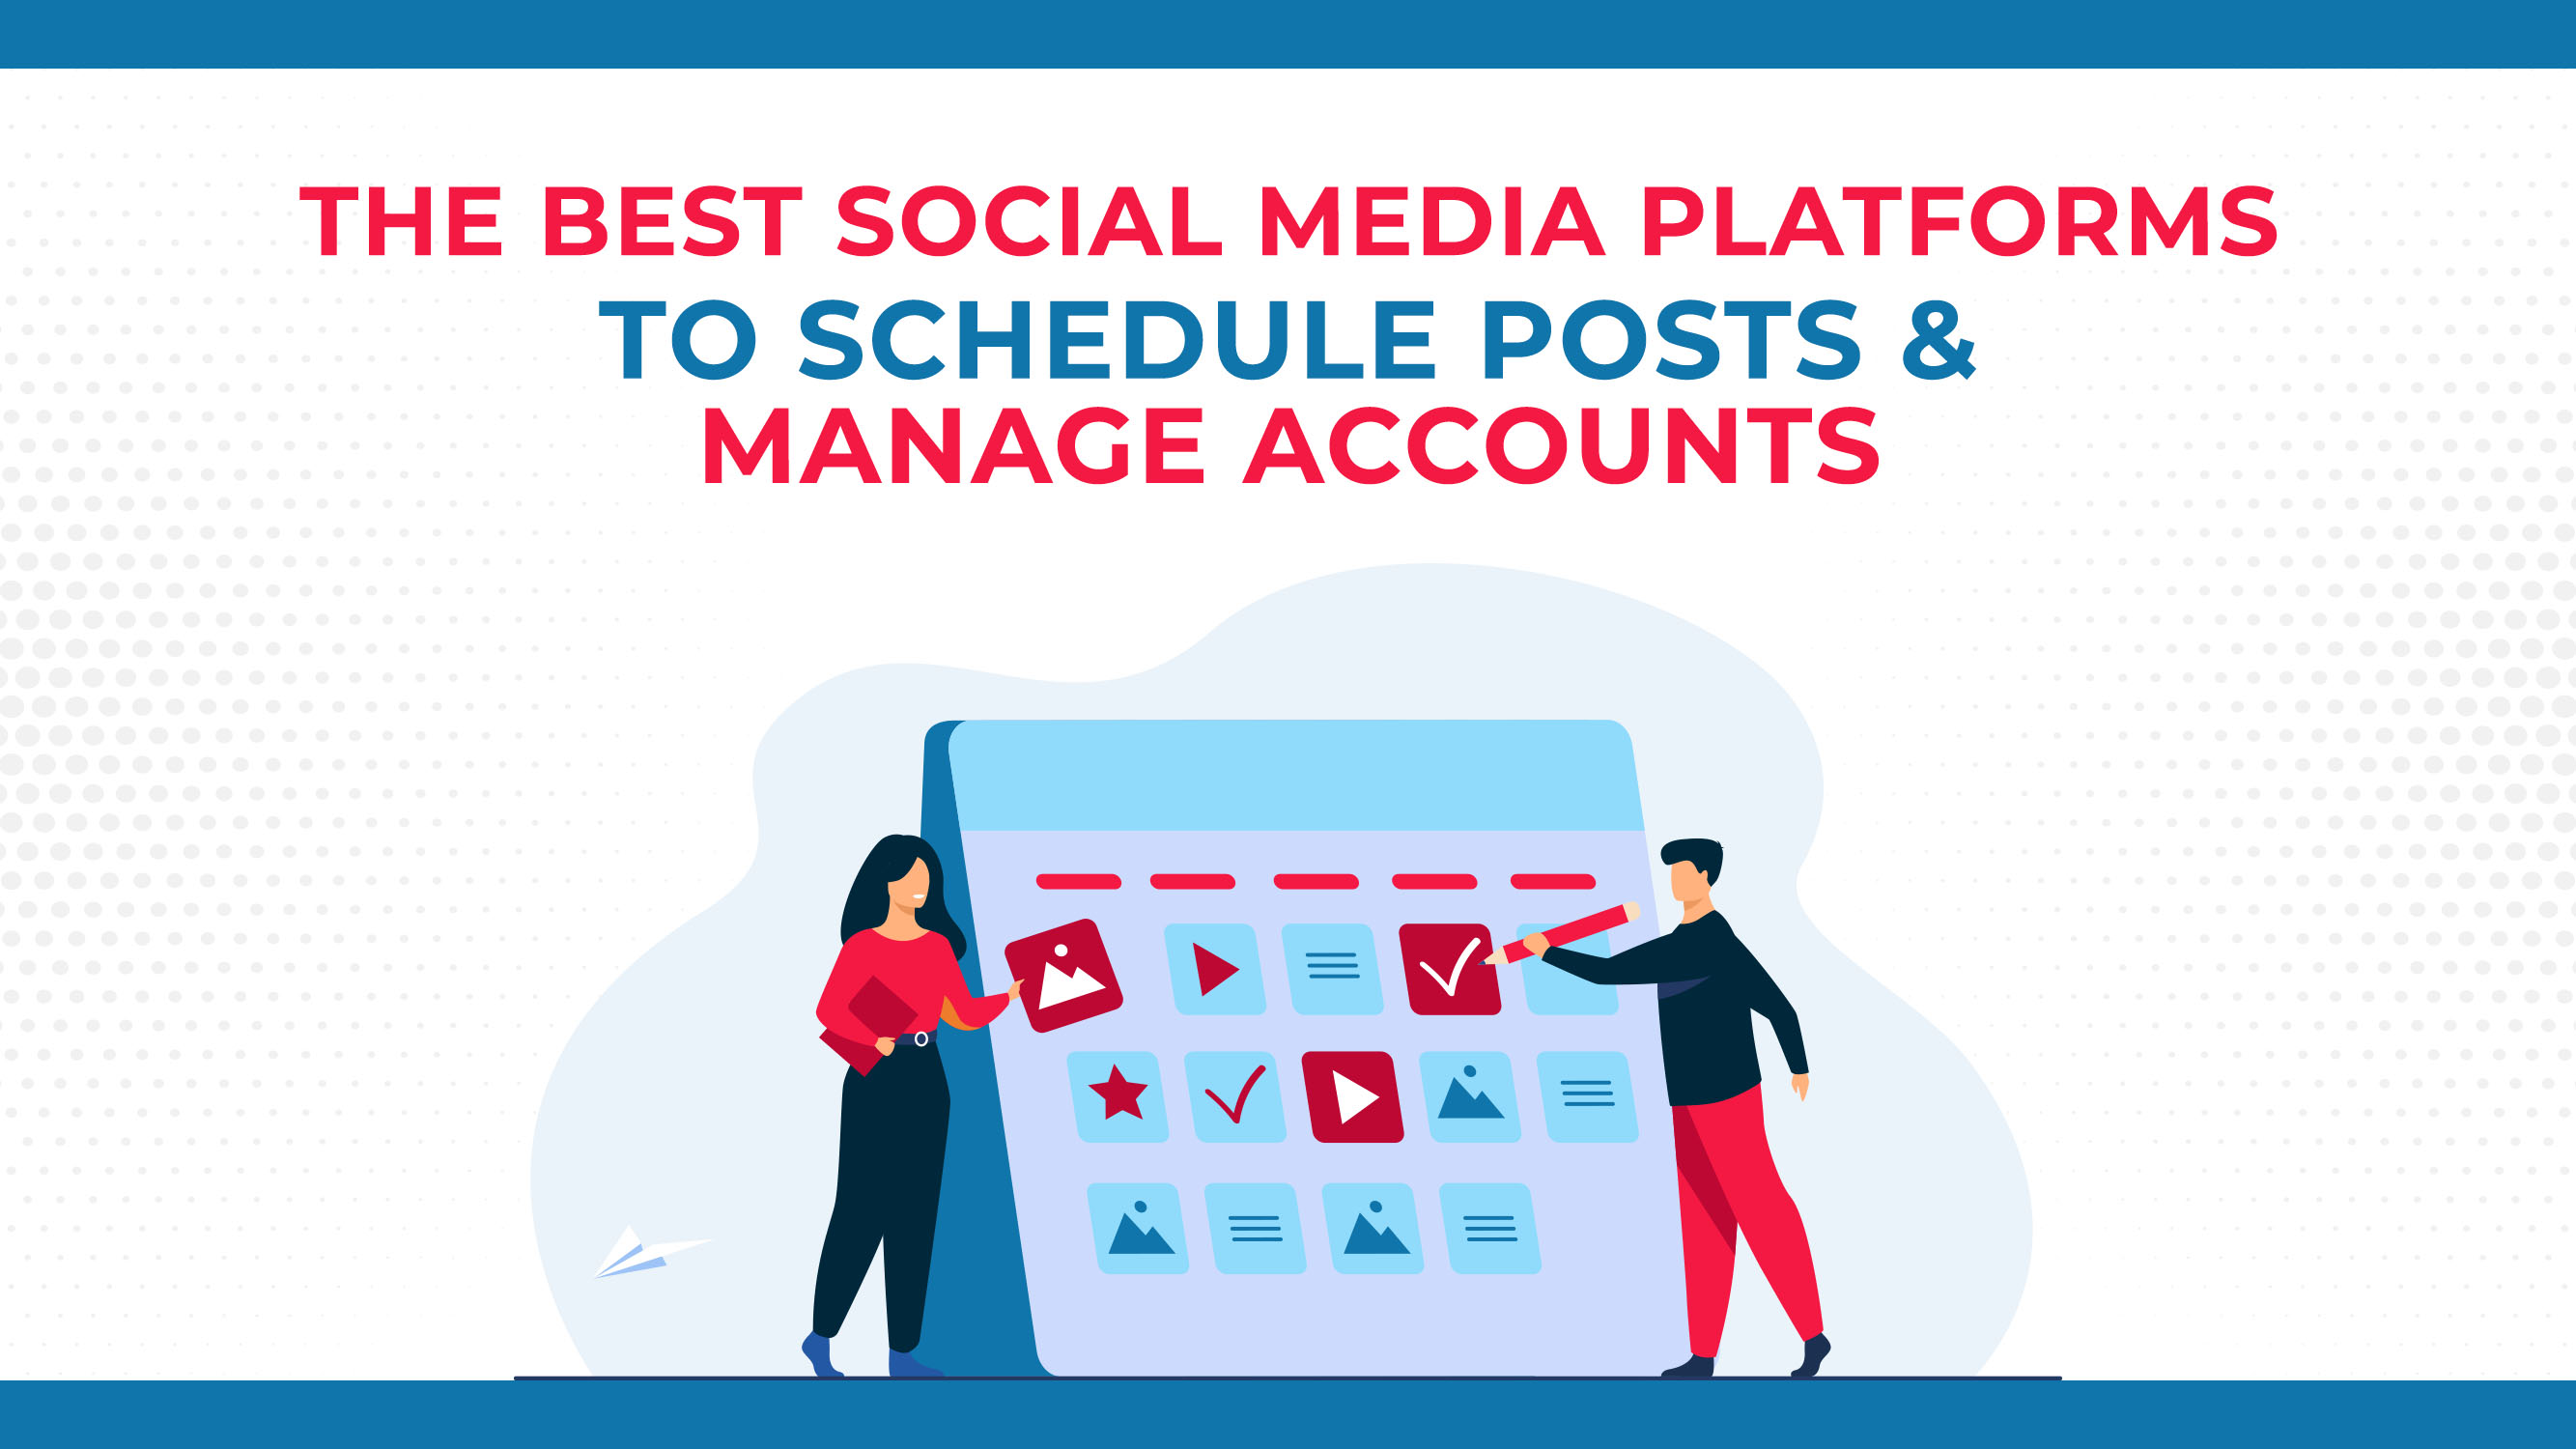 The Best Social Media Tools To Schedule Posts & Manage Accounts